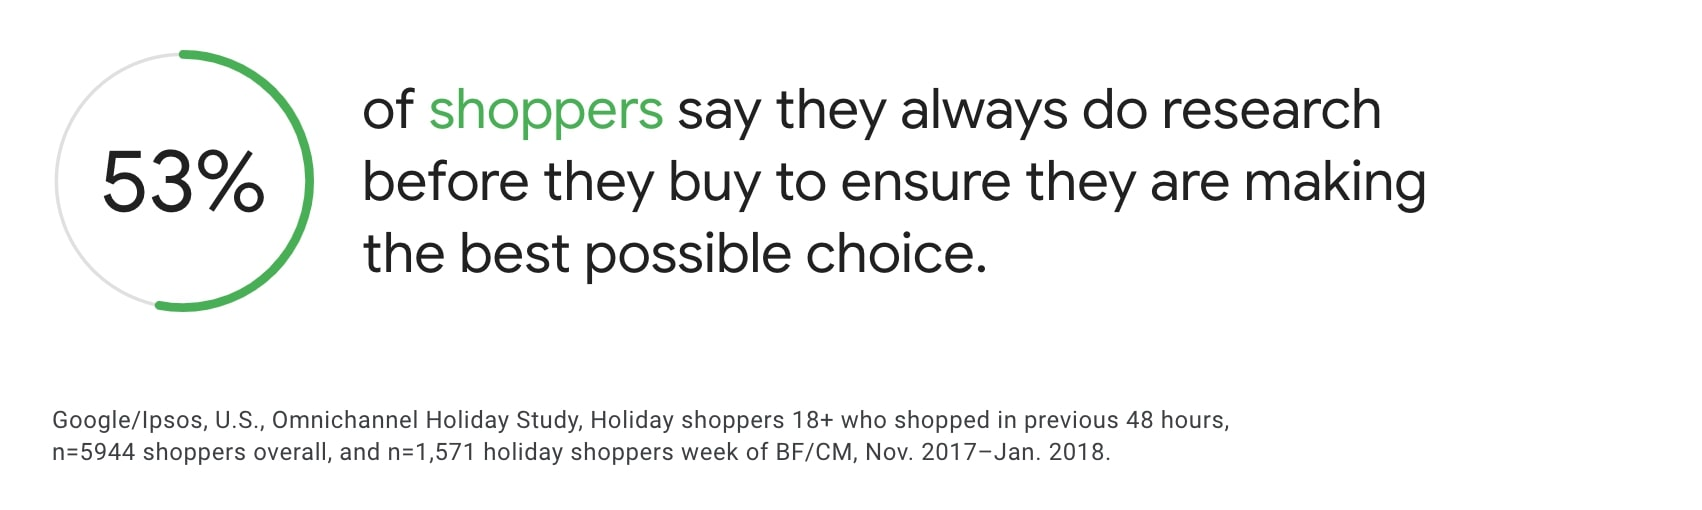 shoppers research before buying a service